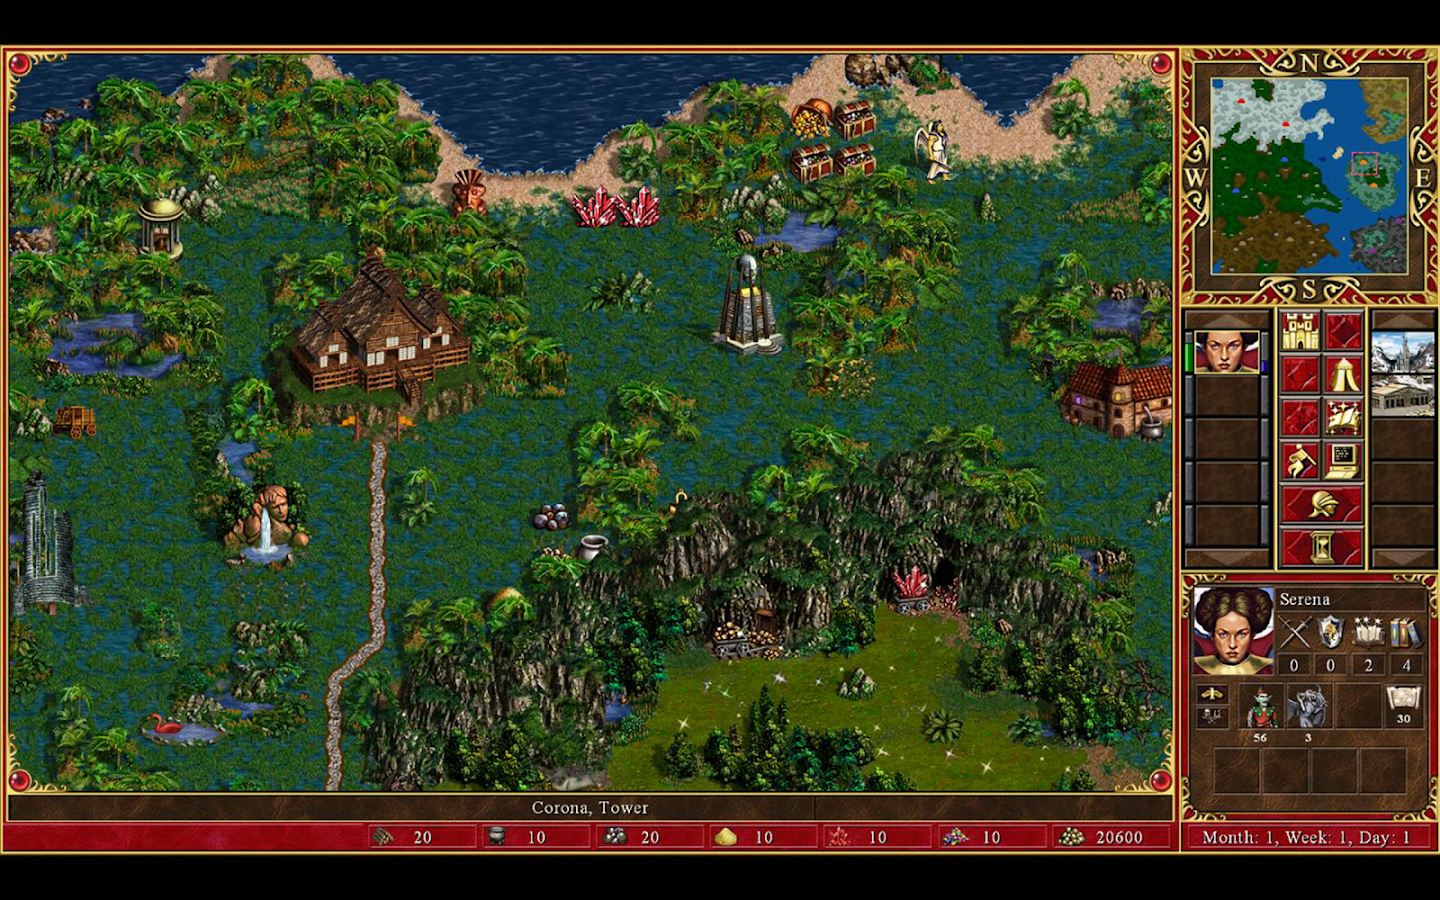 Heroes of Might & Magic III HD Screenshot 11